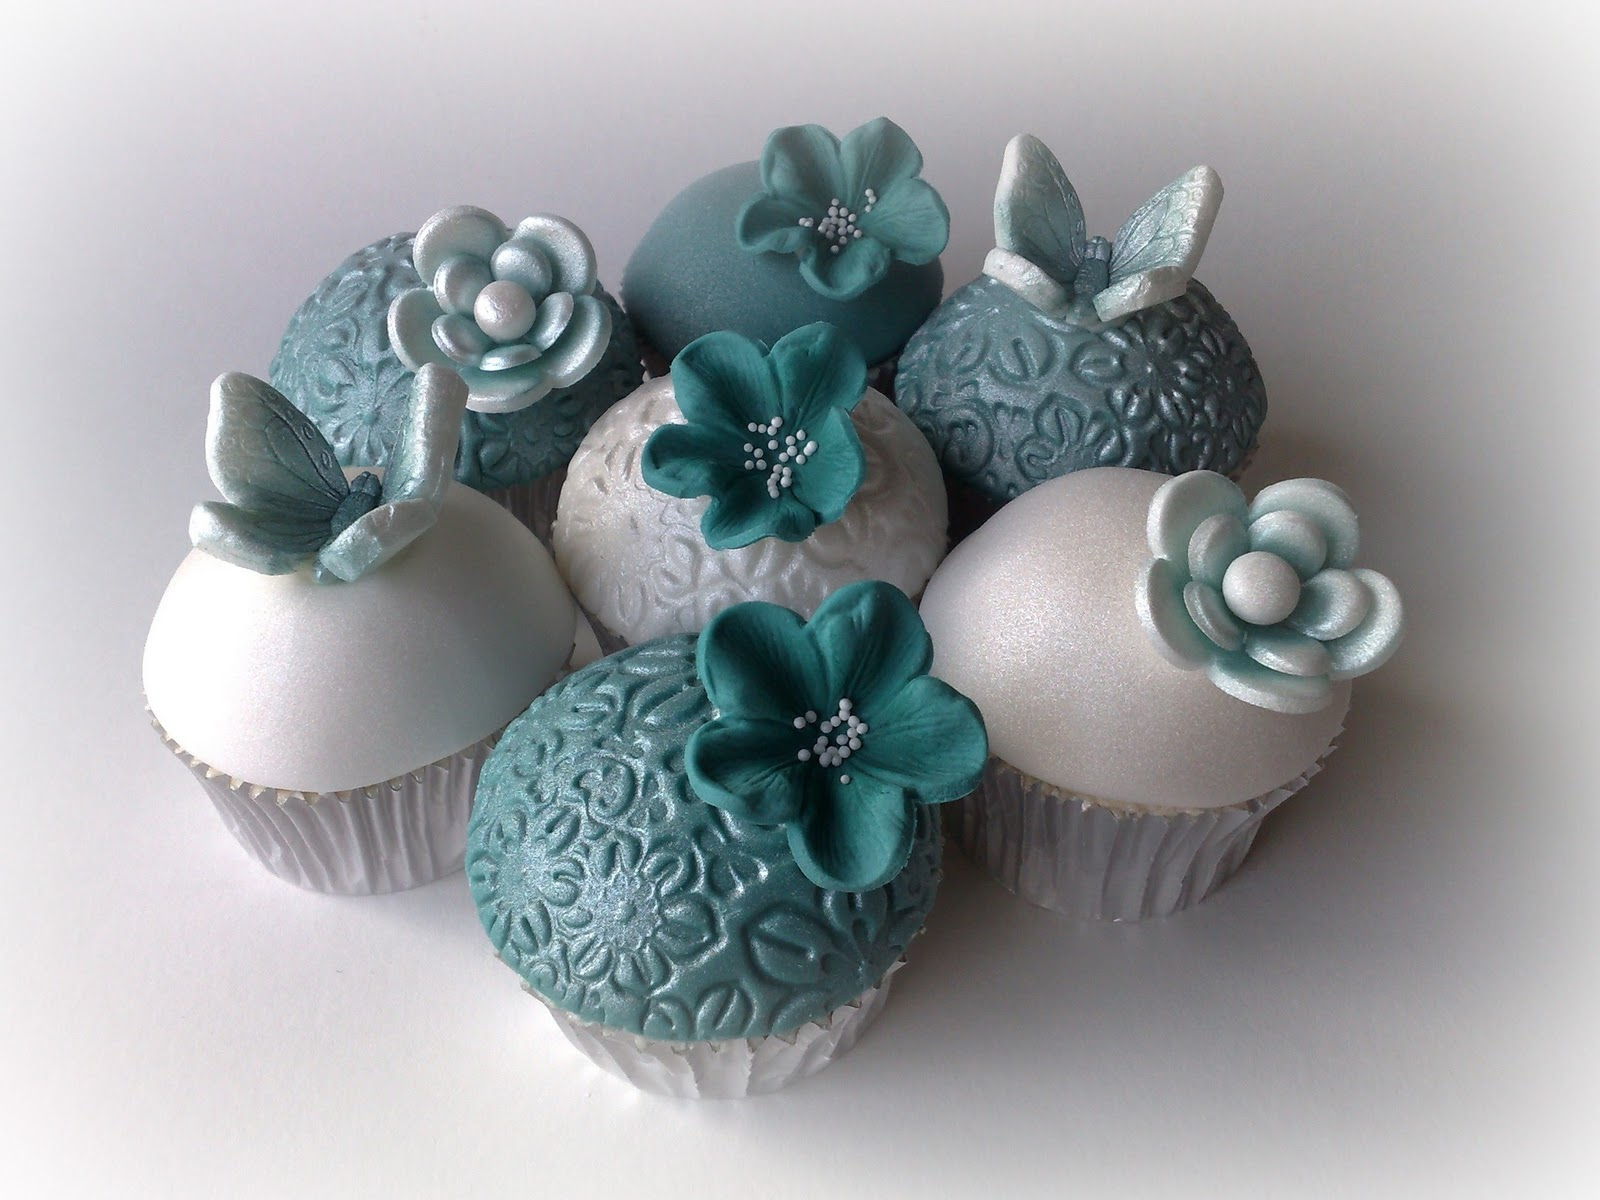 Small Things Iced Teal & White Wedding Cupcakes & Cookies